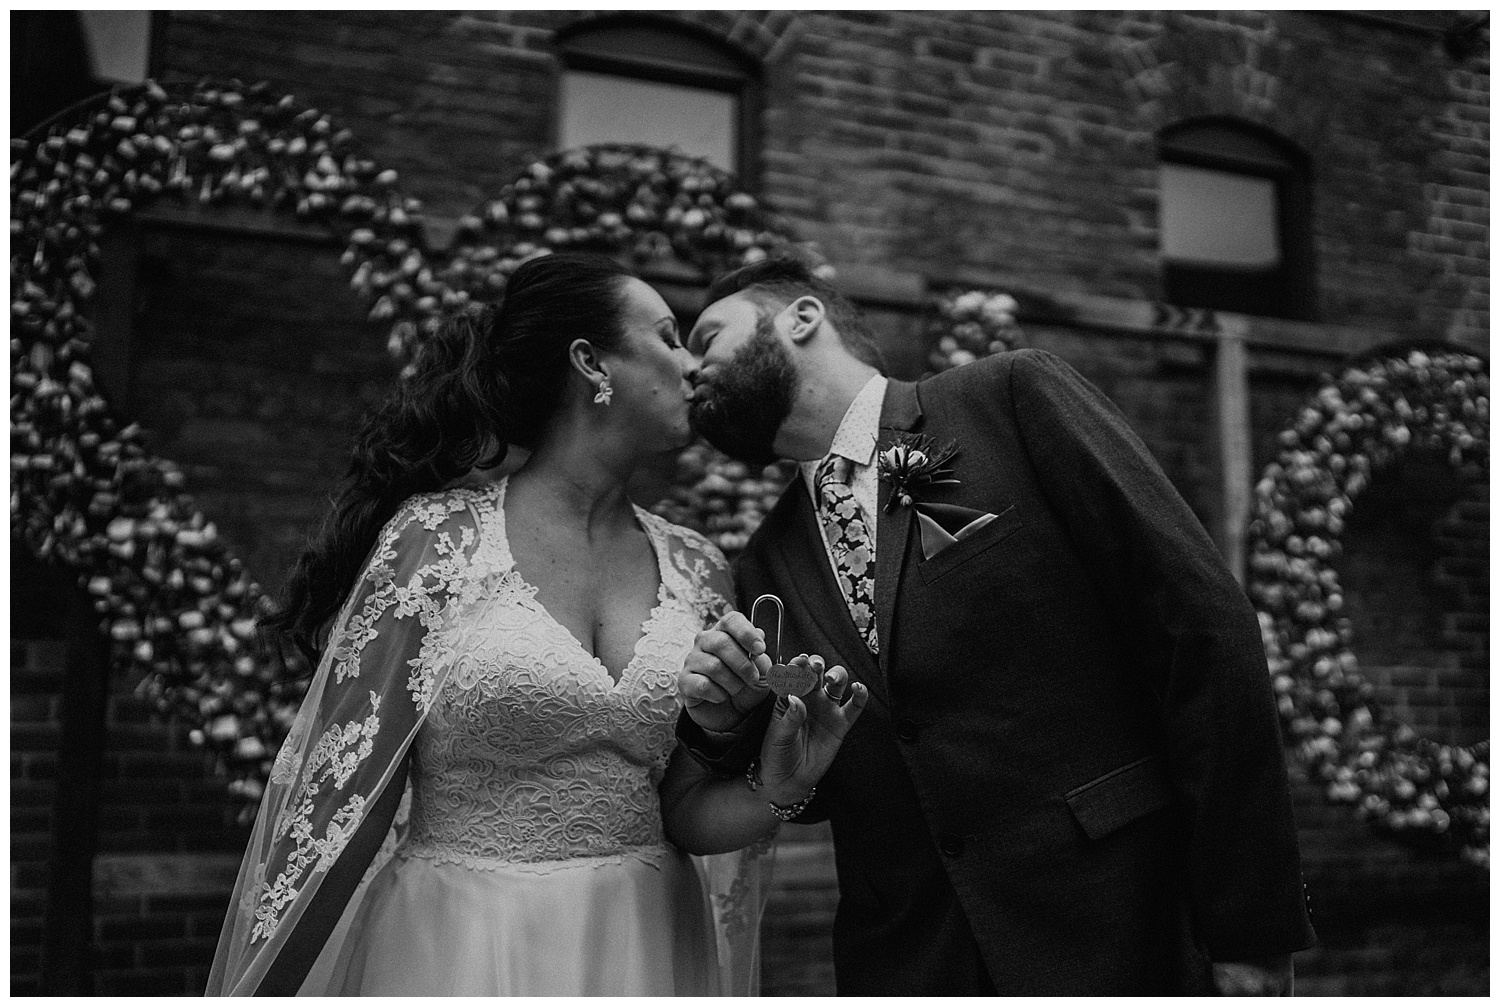 Katie Marie Photography | Archeo Wedding Arta Gallery Wedding | Distillery District Wedding | Toronto Wedding Photographer | Hamilton Toronto Ontario Wedding Photographer |_0041.jpg